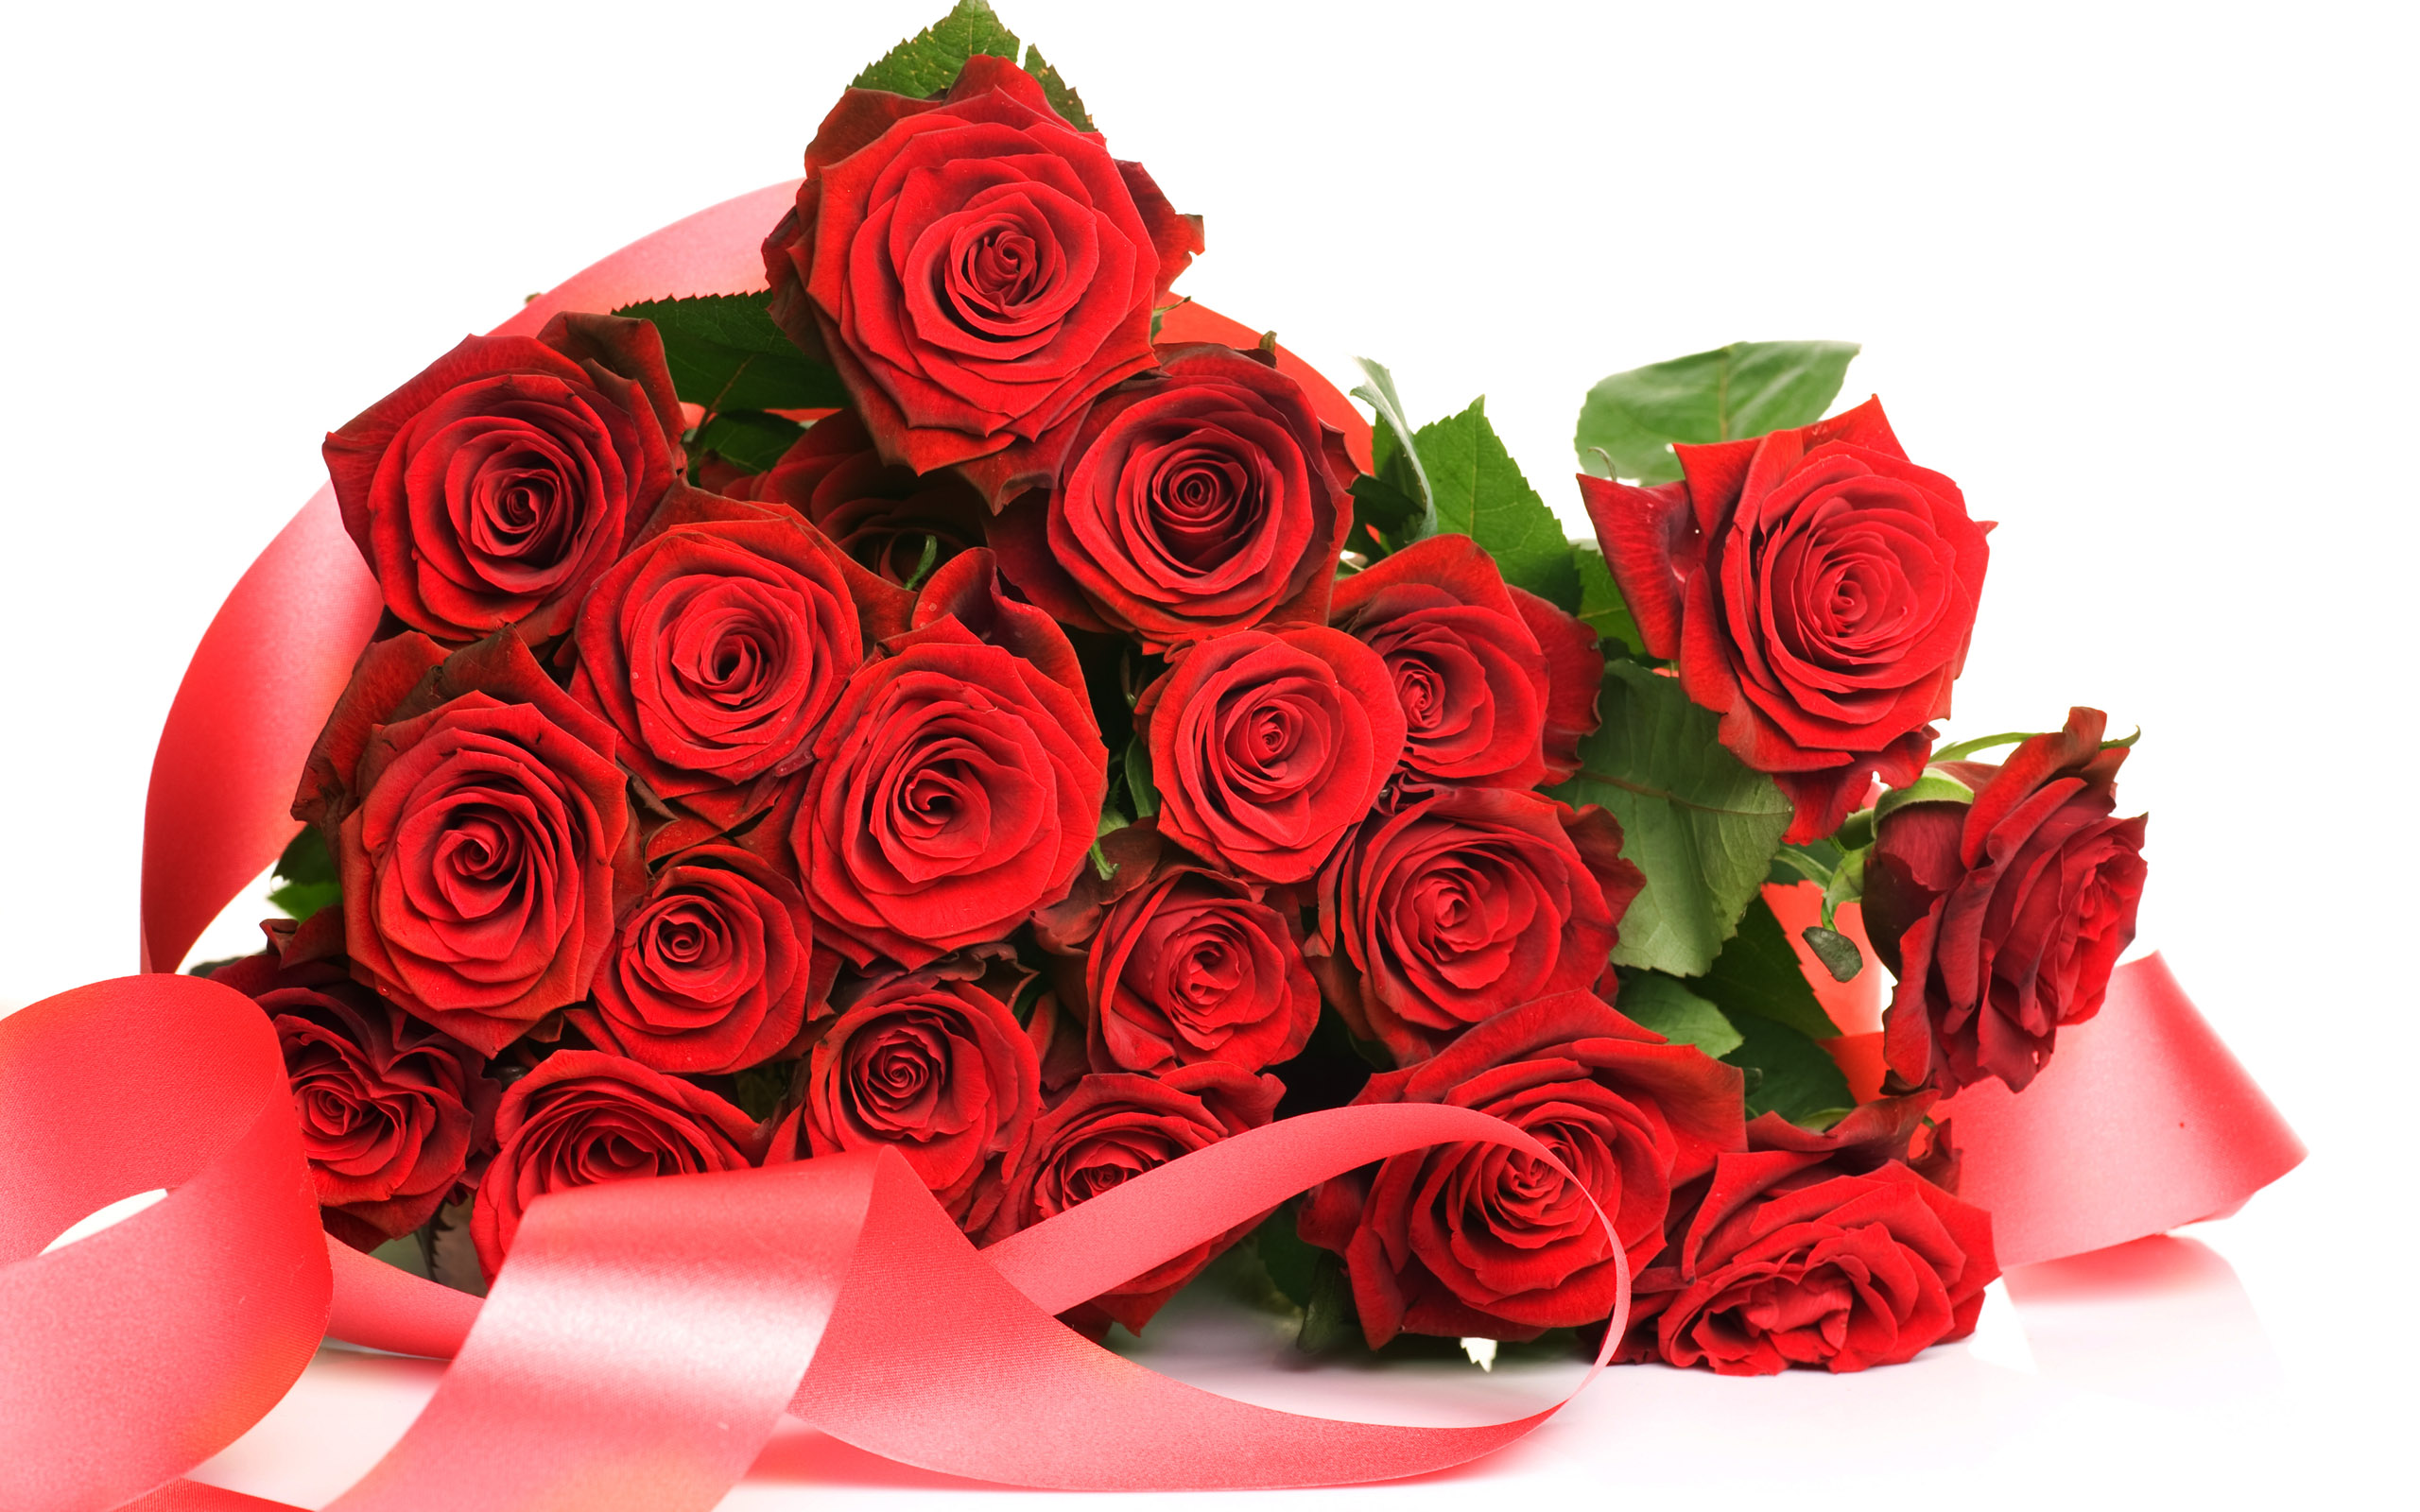 Worlds top 100 beautiful flowers images wallpaper photos free happy rose day images izmirmasajfo